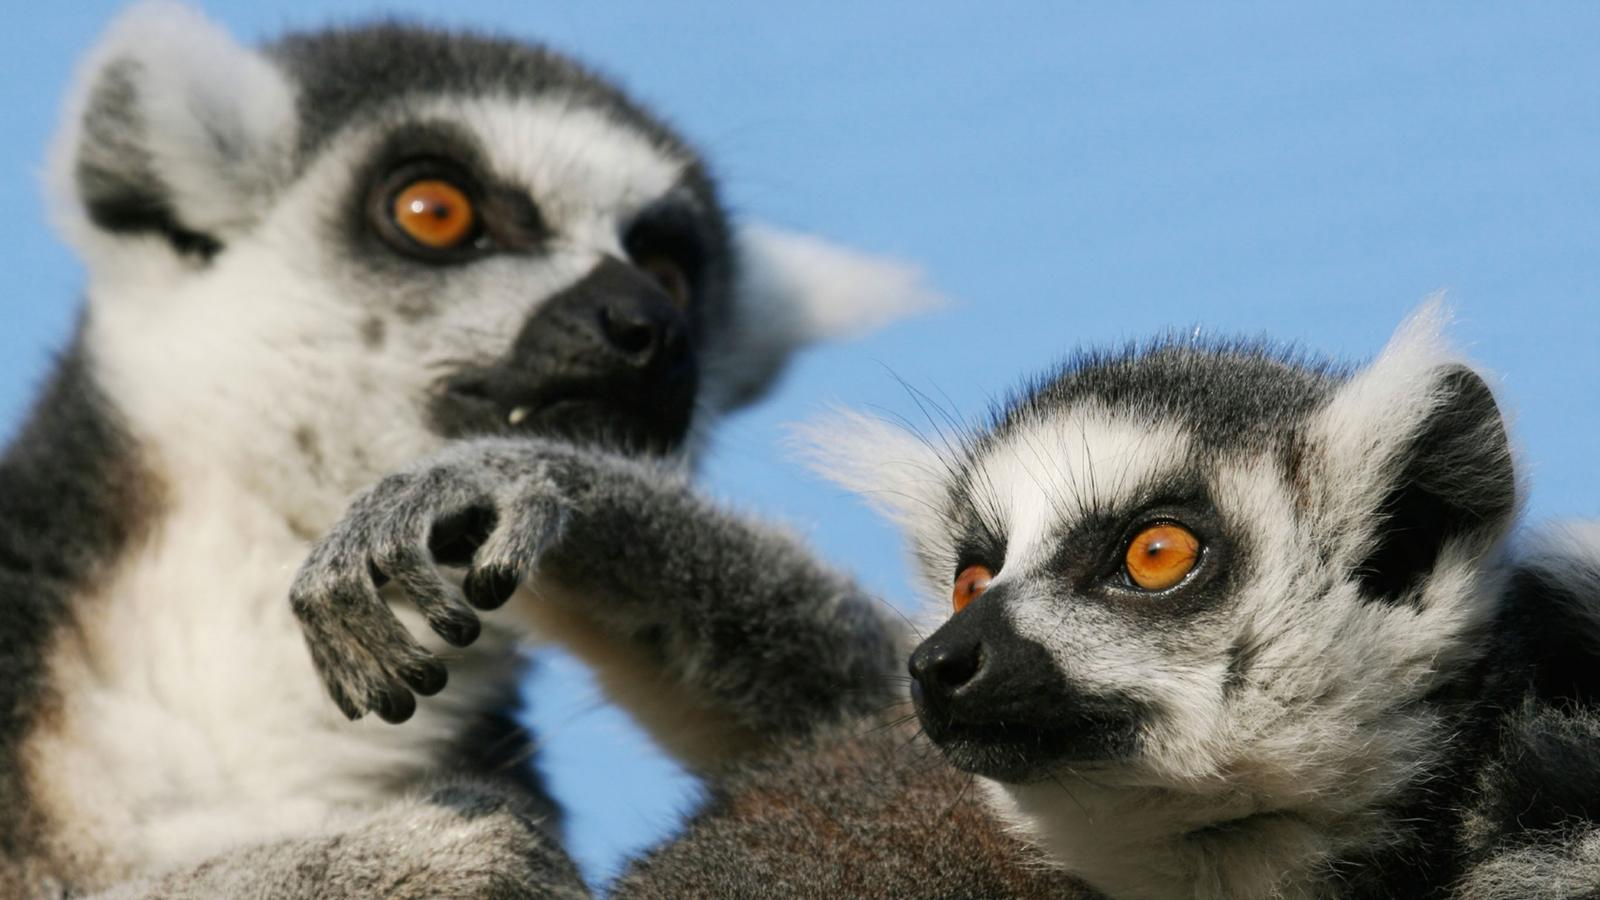 The hands-down superstars of Madagascar are the endangered lemurs.